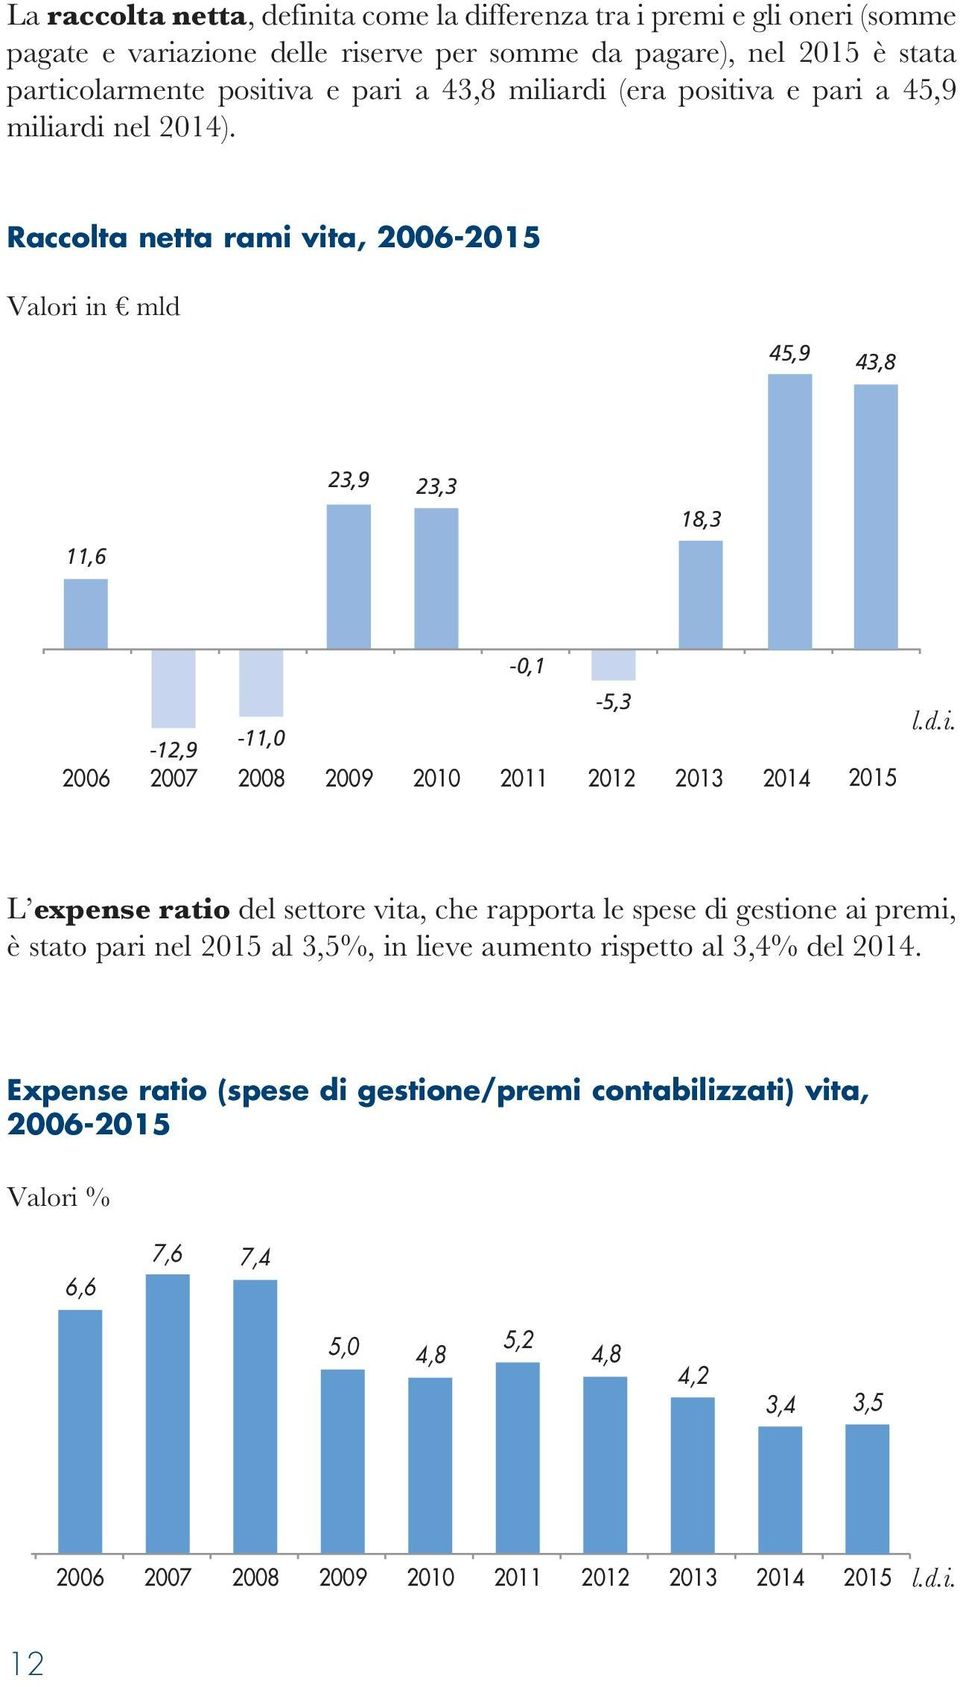 Raccolta netta rami vita, 2006-2015 Valori in mld 45,9 43,8 11,6 23,9 23,3 18,3-0,1-12,9-11,0 2006 2007 2008 2009-5,3 2010 2011 2012 2013 2014 2015 L expense ratio del settore